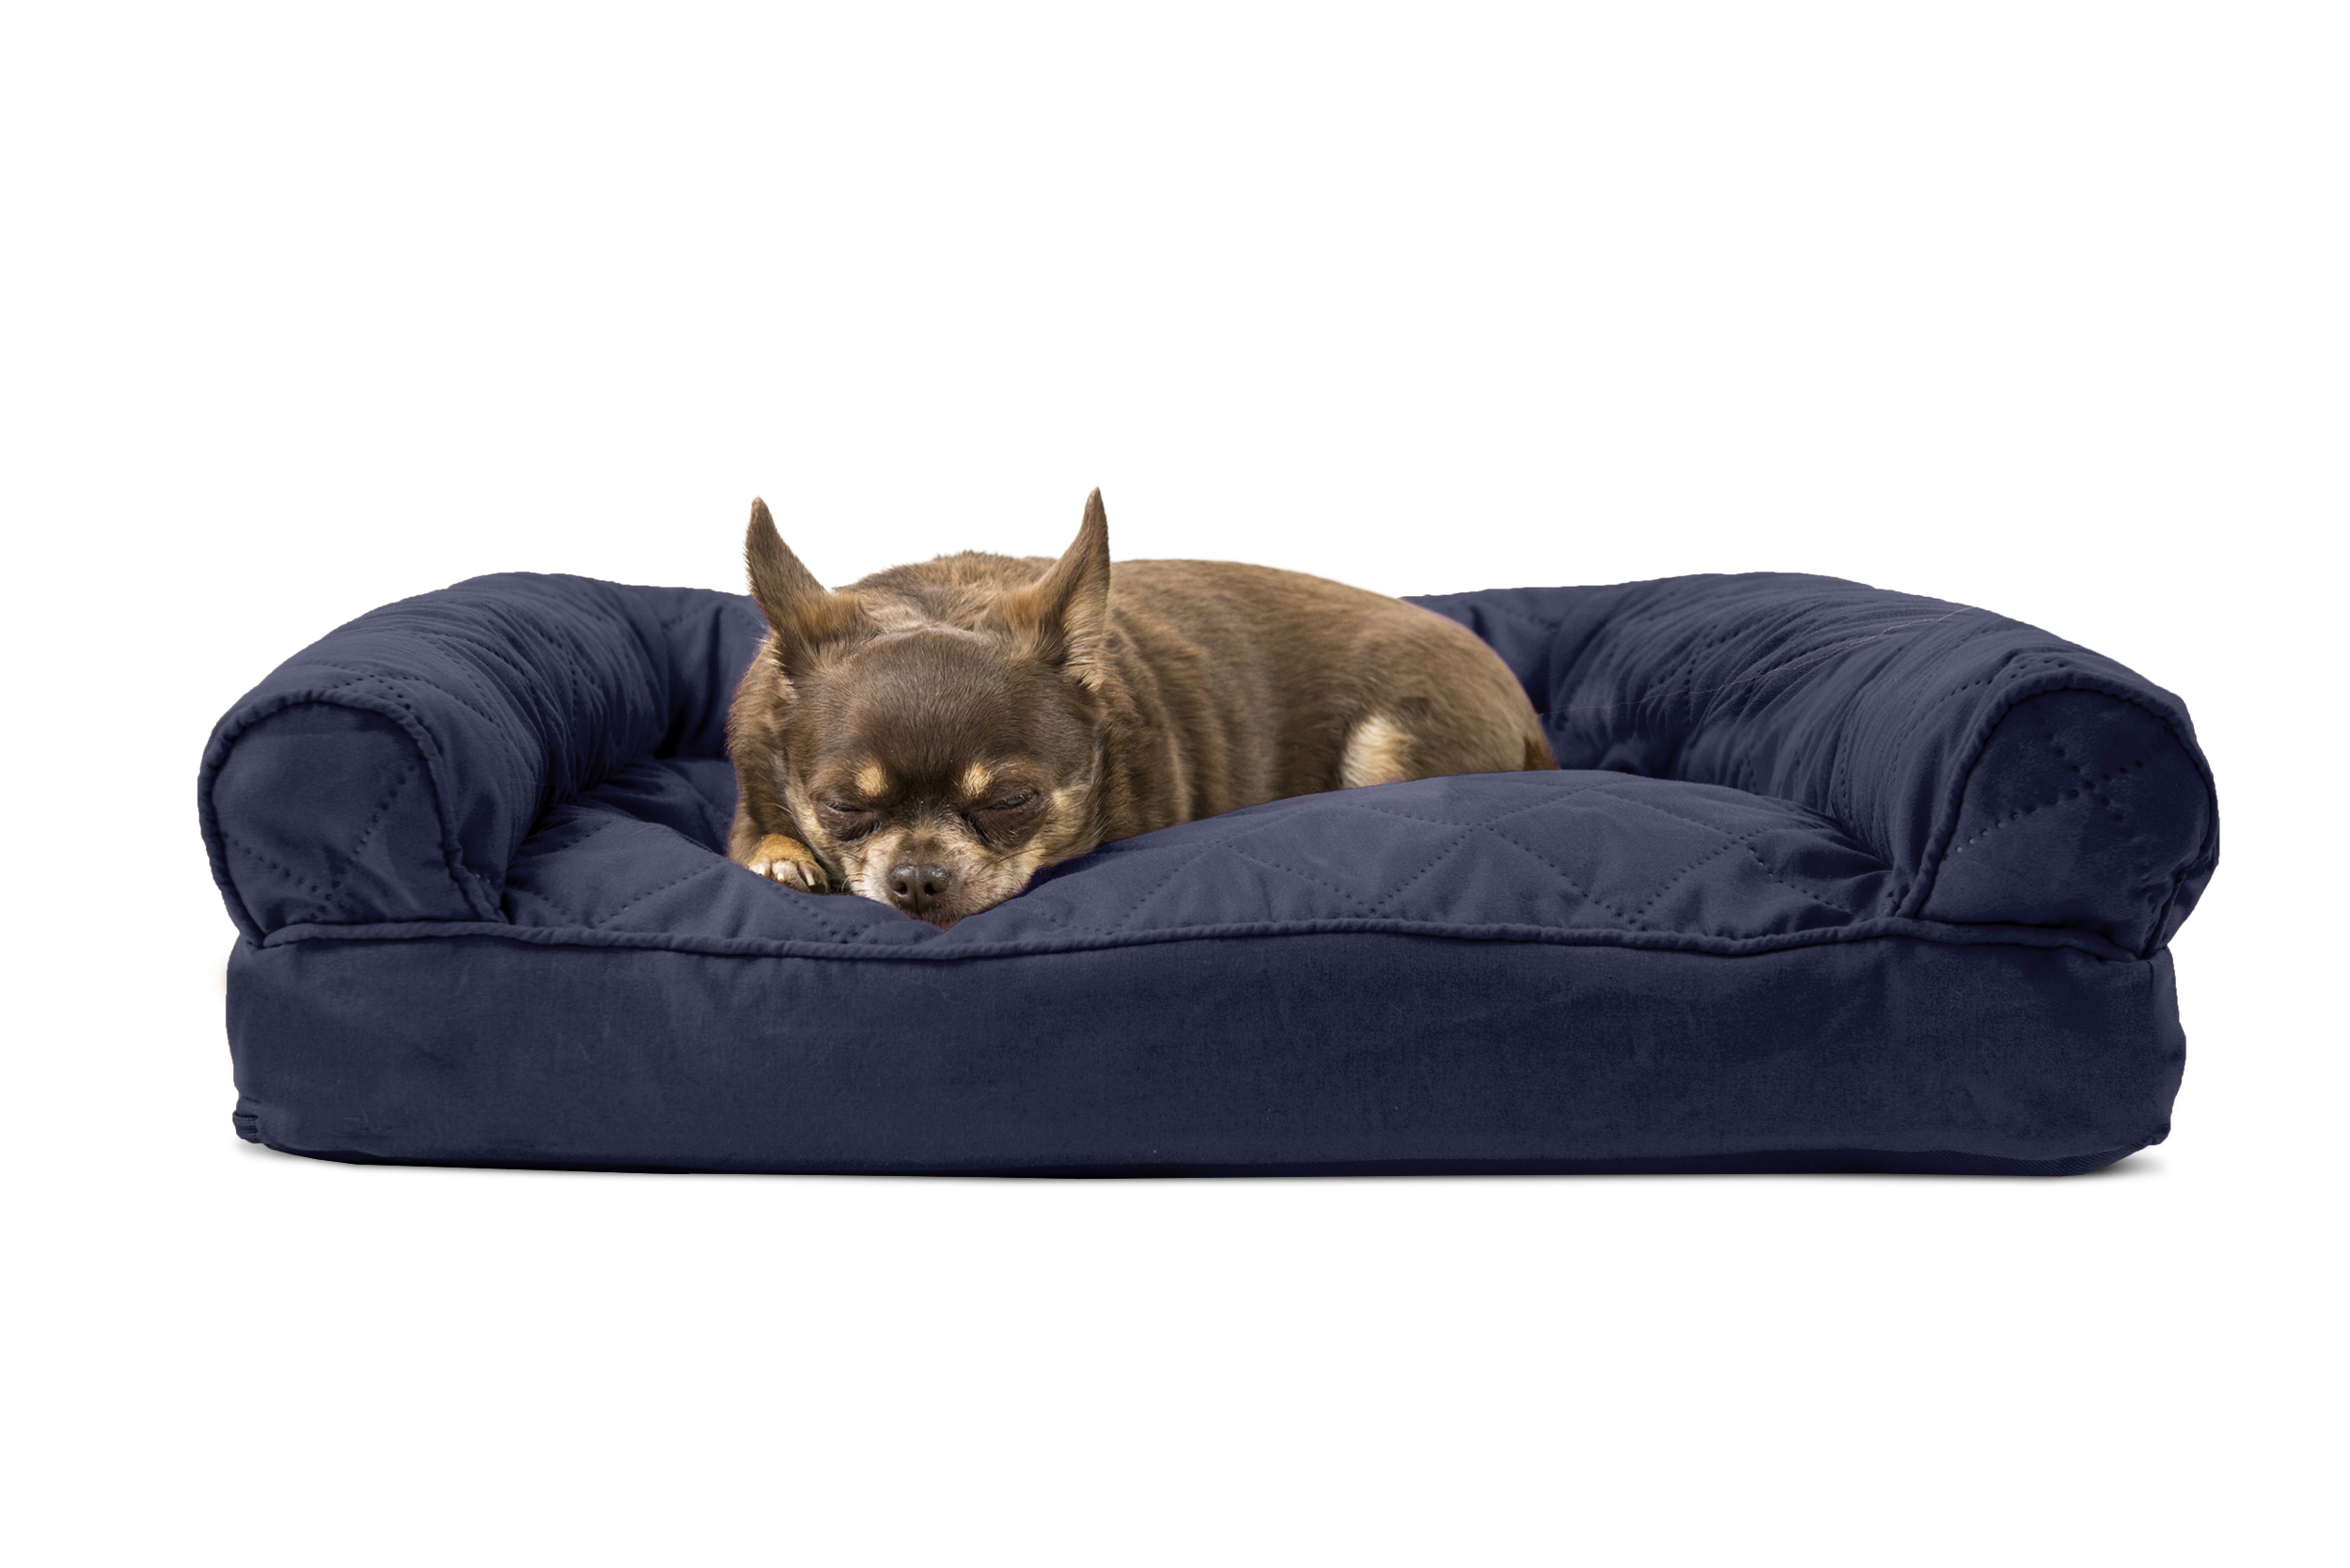 mini dog sofa orange turns into bunk bed pet beds you ll love wayfair thesofa